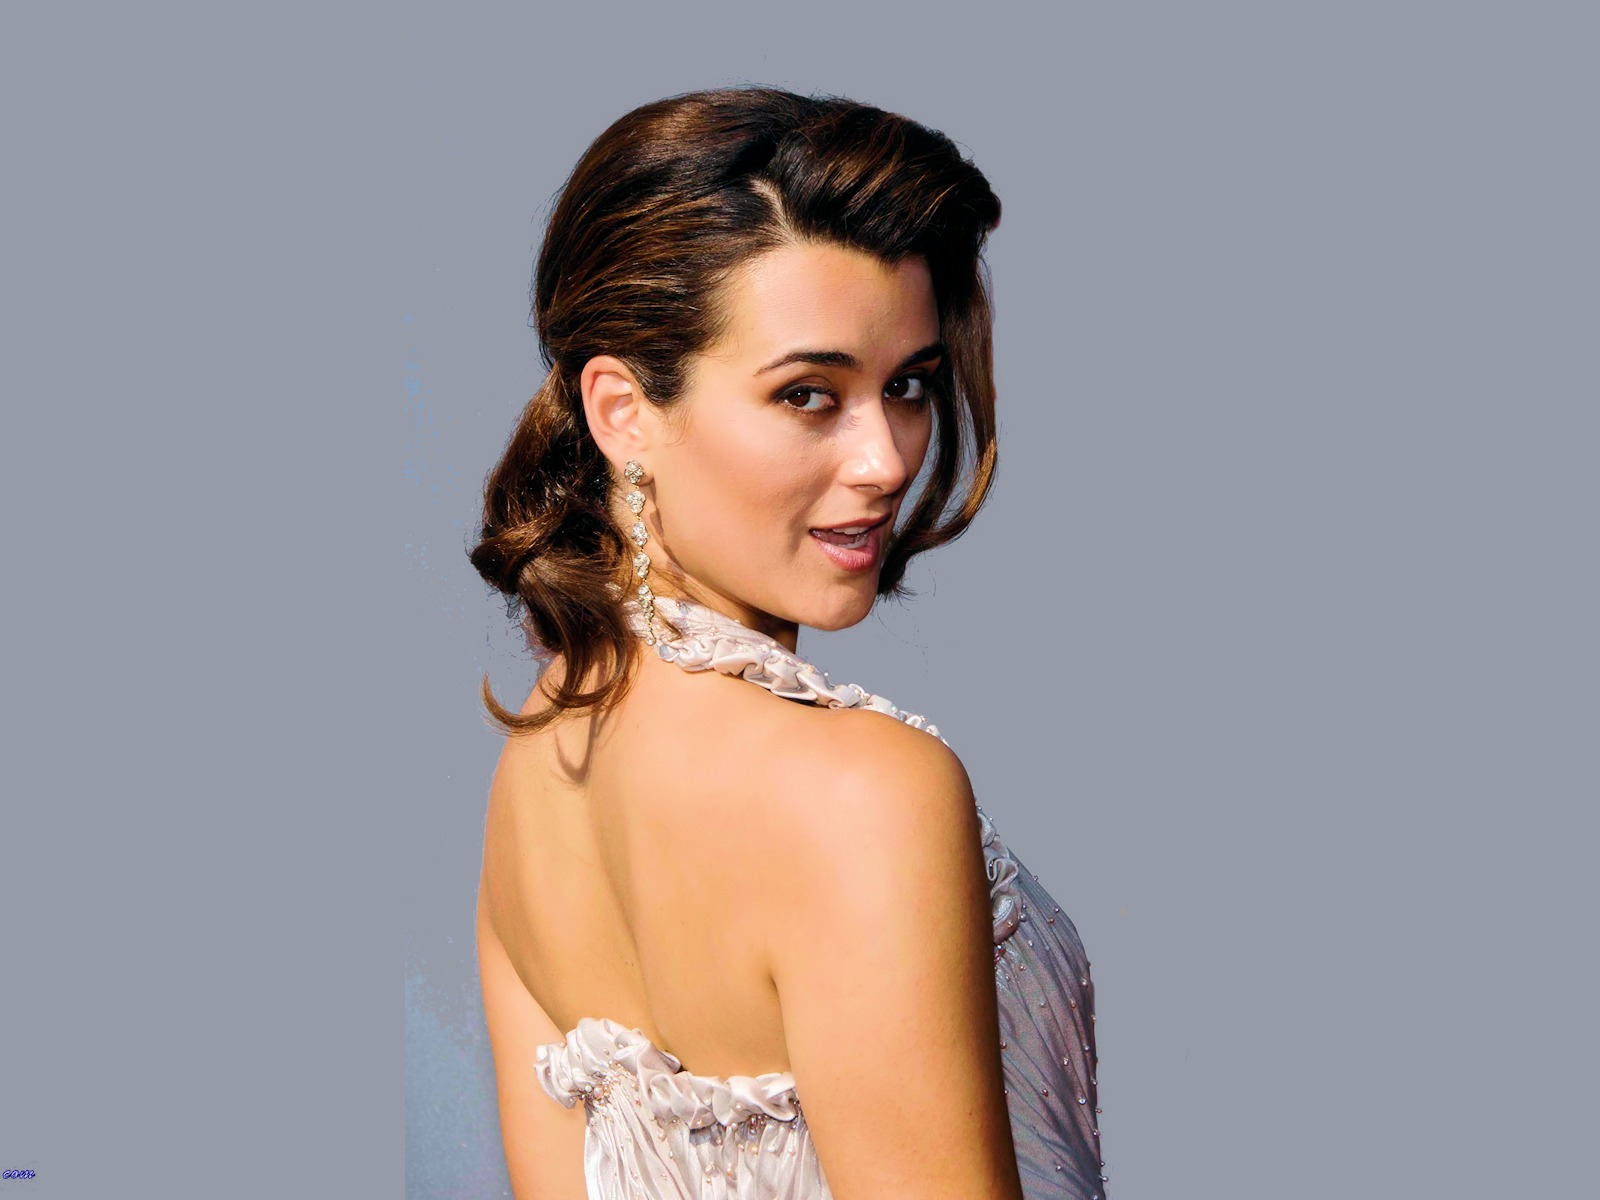 Cote de Pablo #020 - 1600x1200 Wallpapers Pictures Photos Images